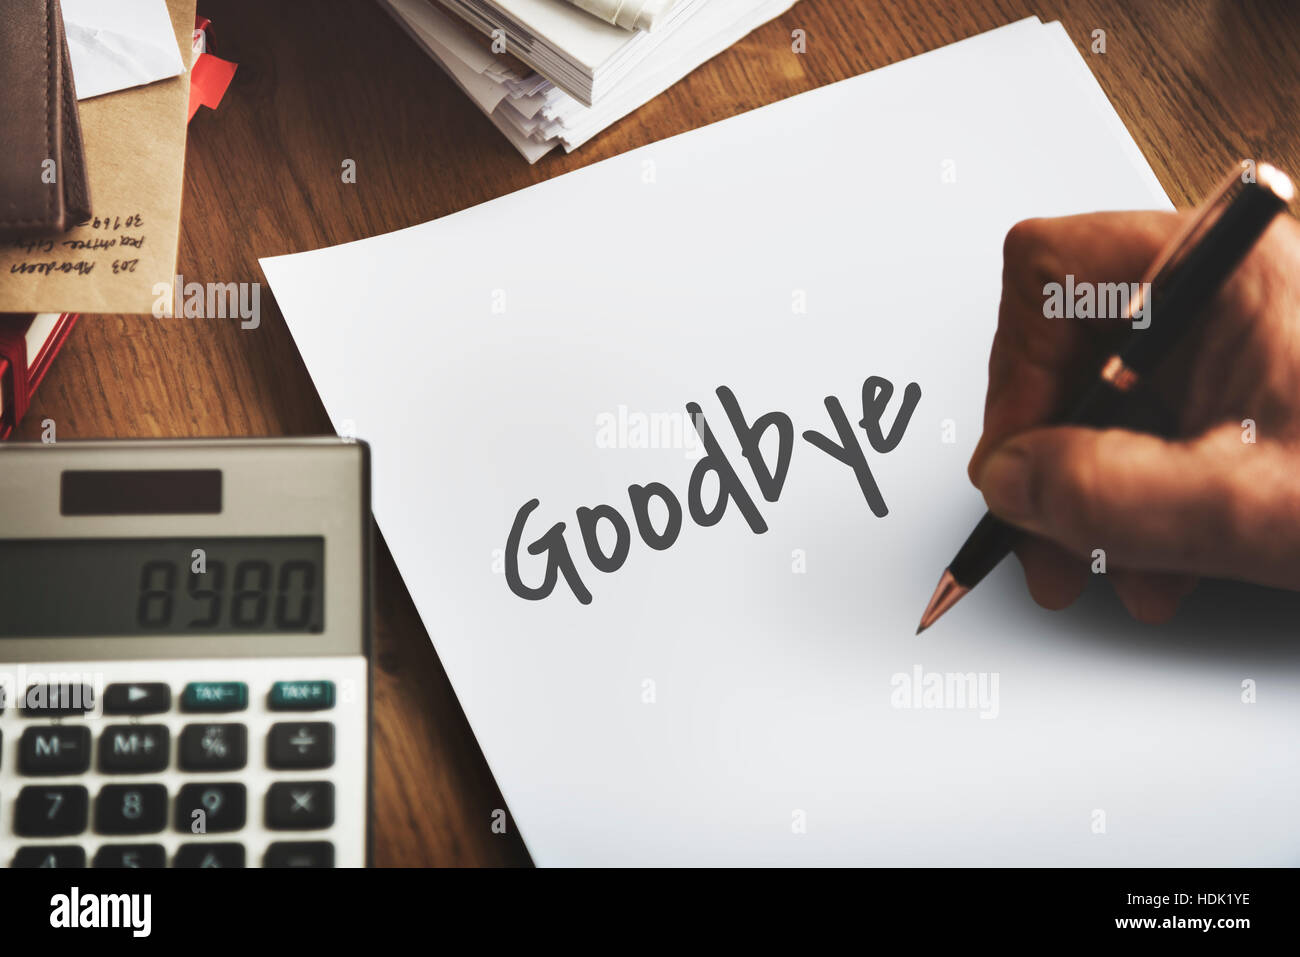 Goodbye Farewell Phrase Saying Leave Later Concept - Stock Image